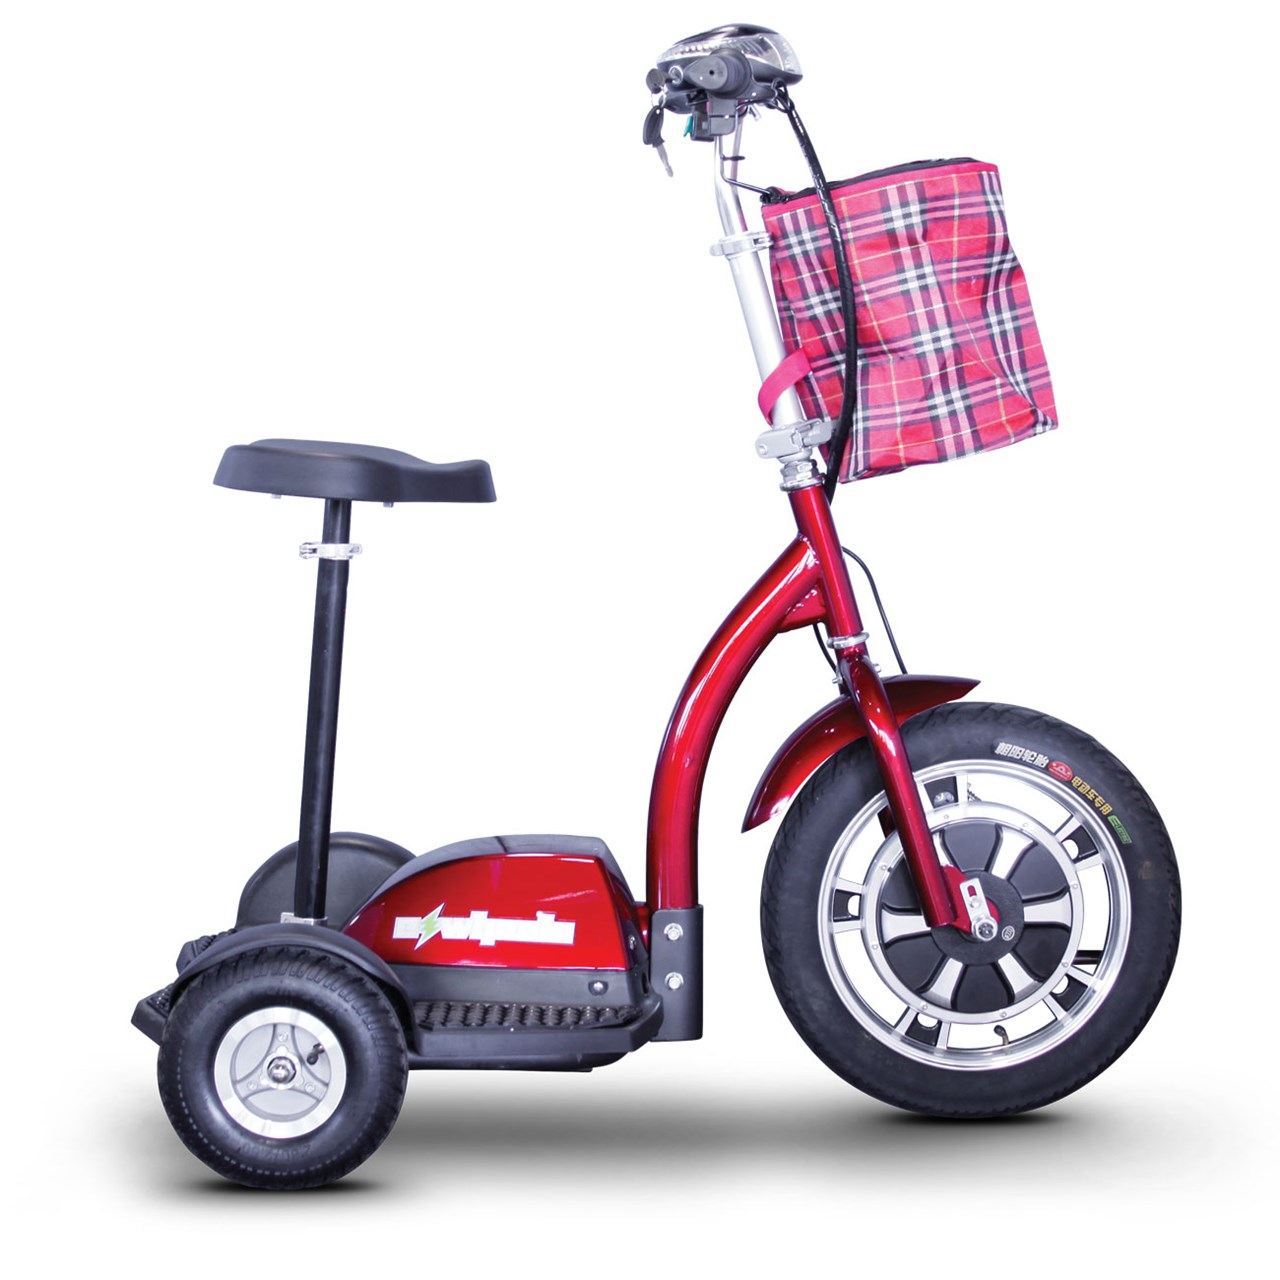 Maxiaids E Wheels Ew 18 Stand N Ride 3 Wheel Electric Mobility Scooter Red